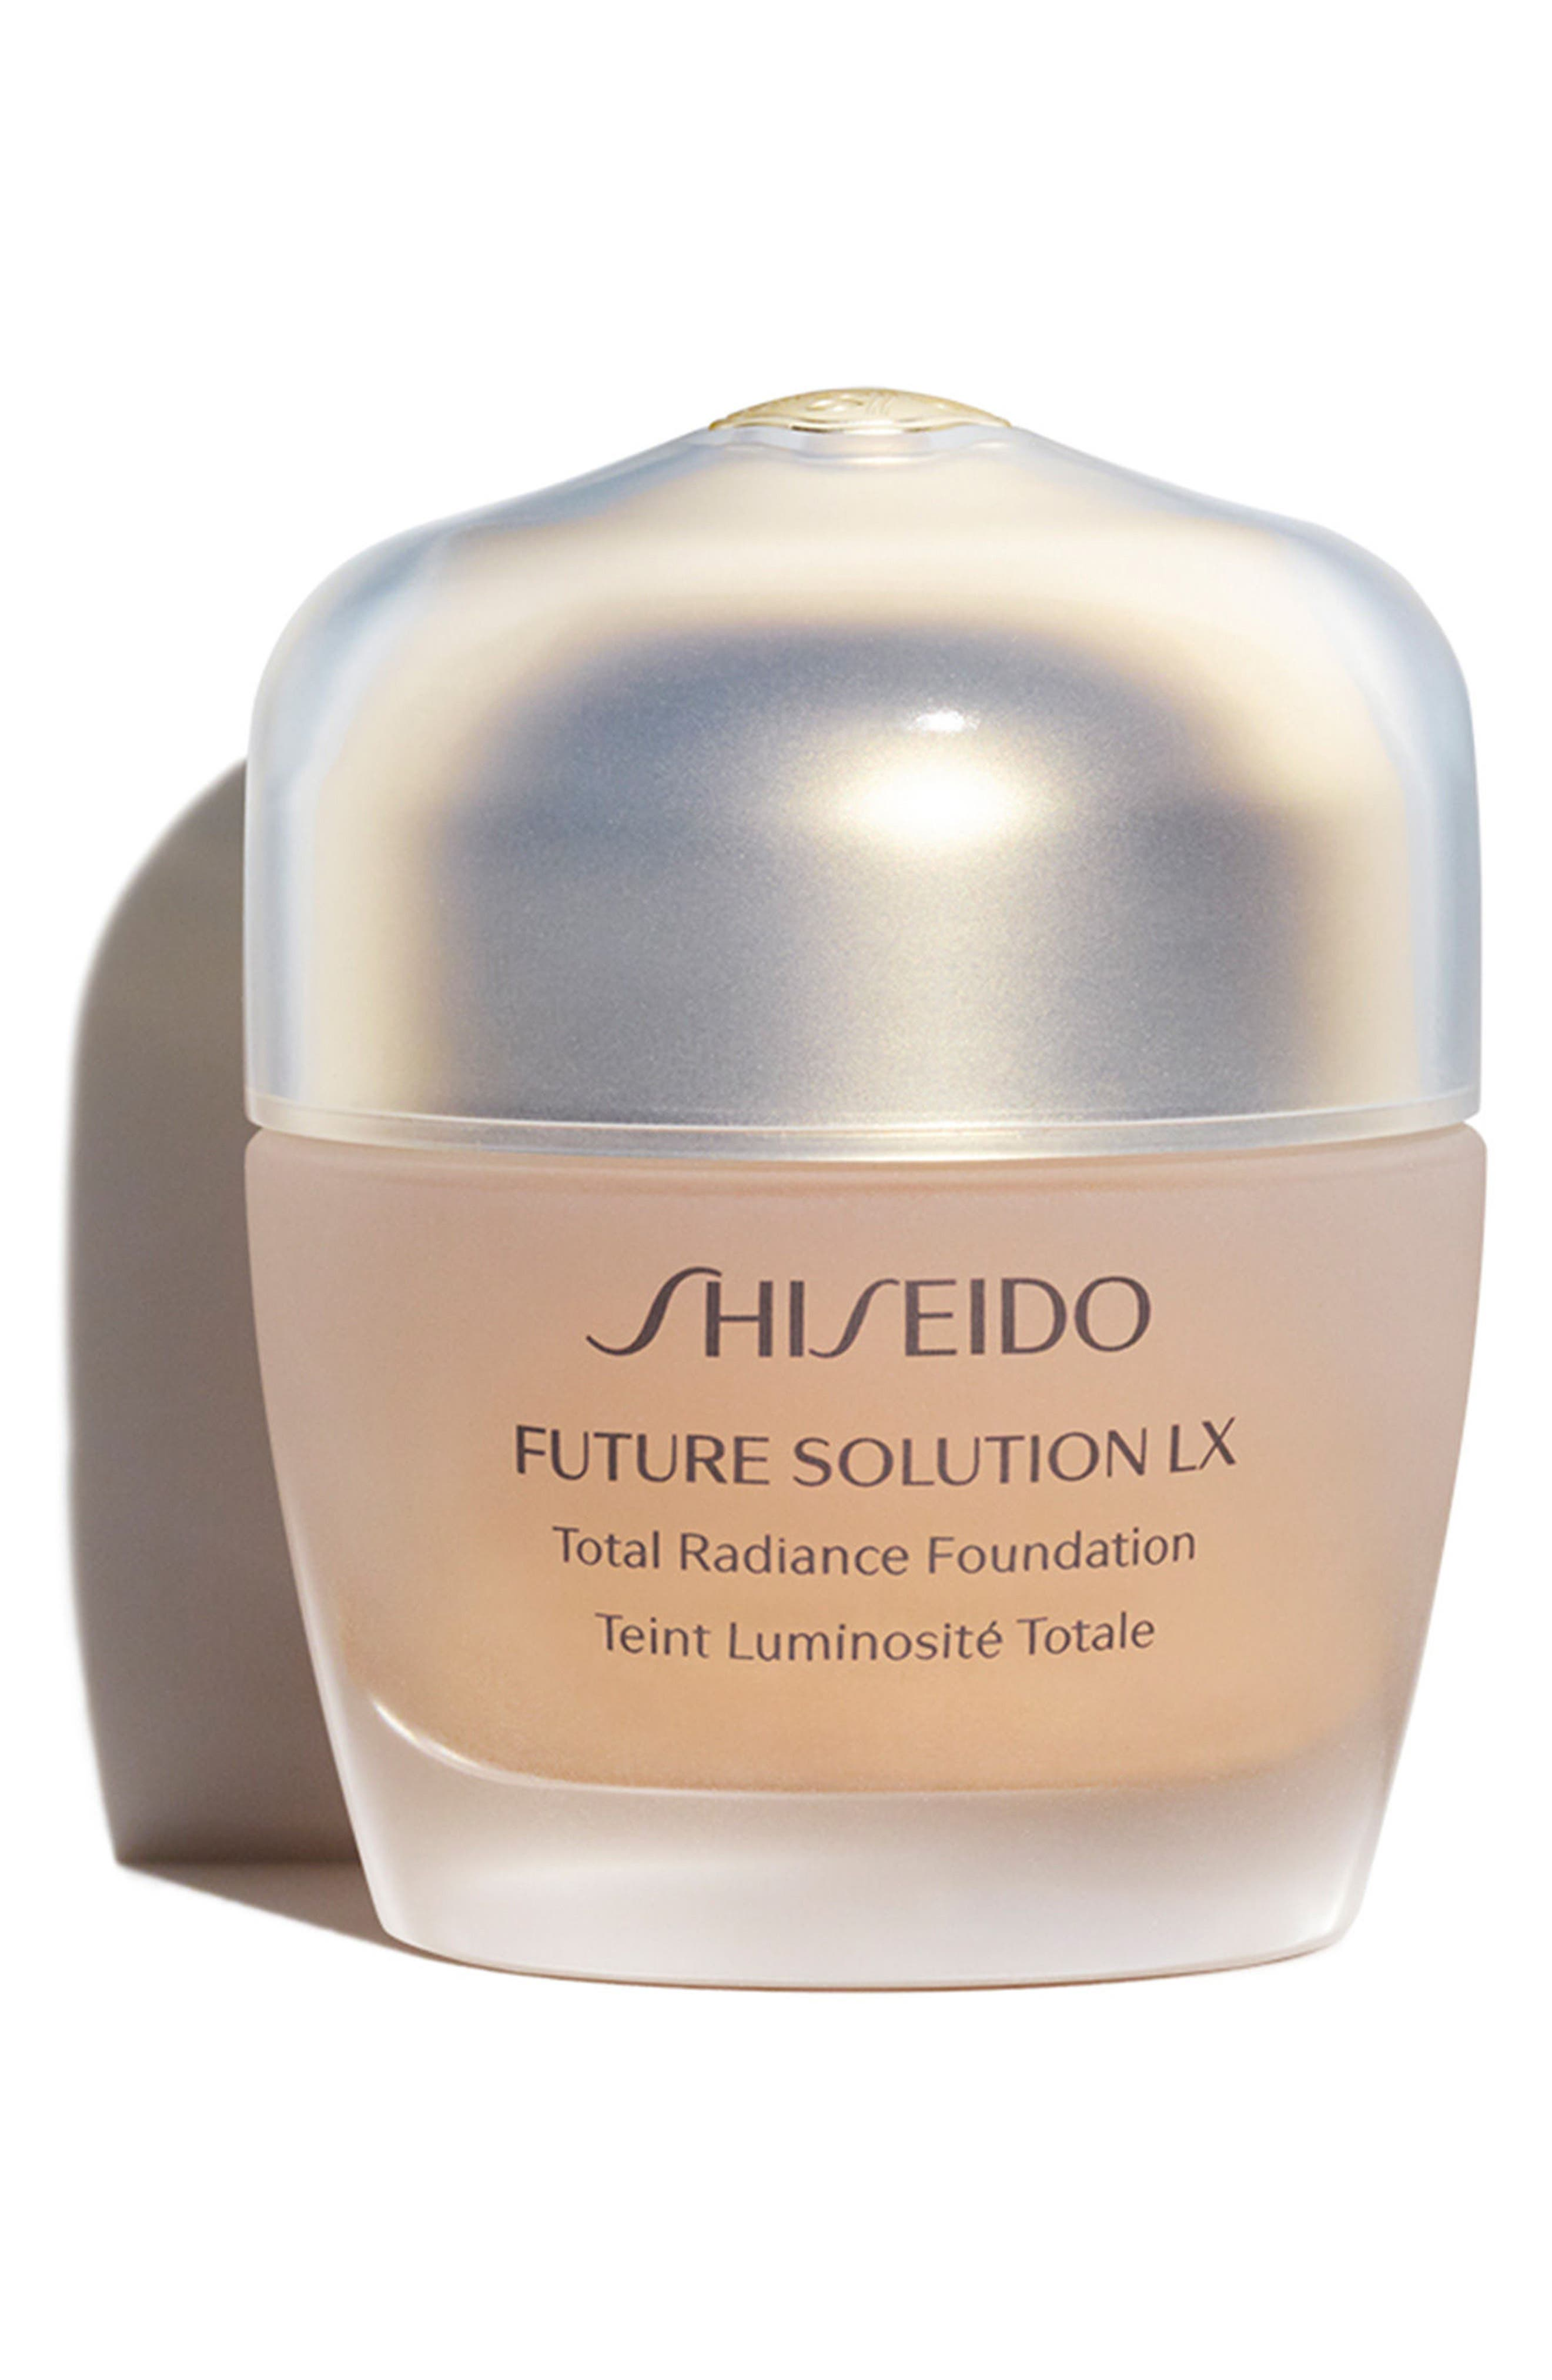 Future Solution LX Total Radiance Foundation Broad Spectrum SPF 20 Sunscreen,                             Main thumbnail 1, color,                             GOLDEN 1